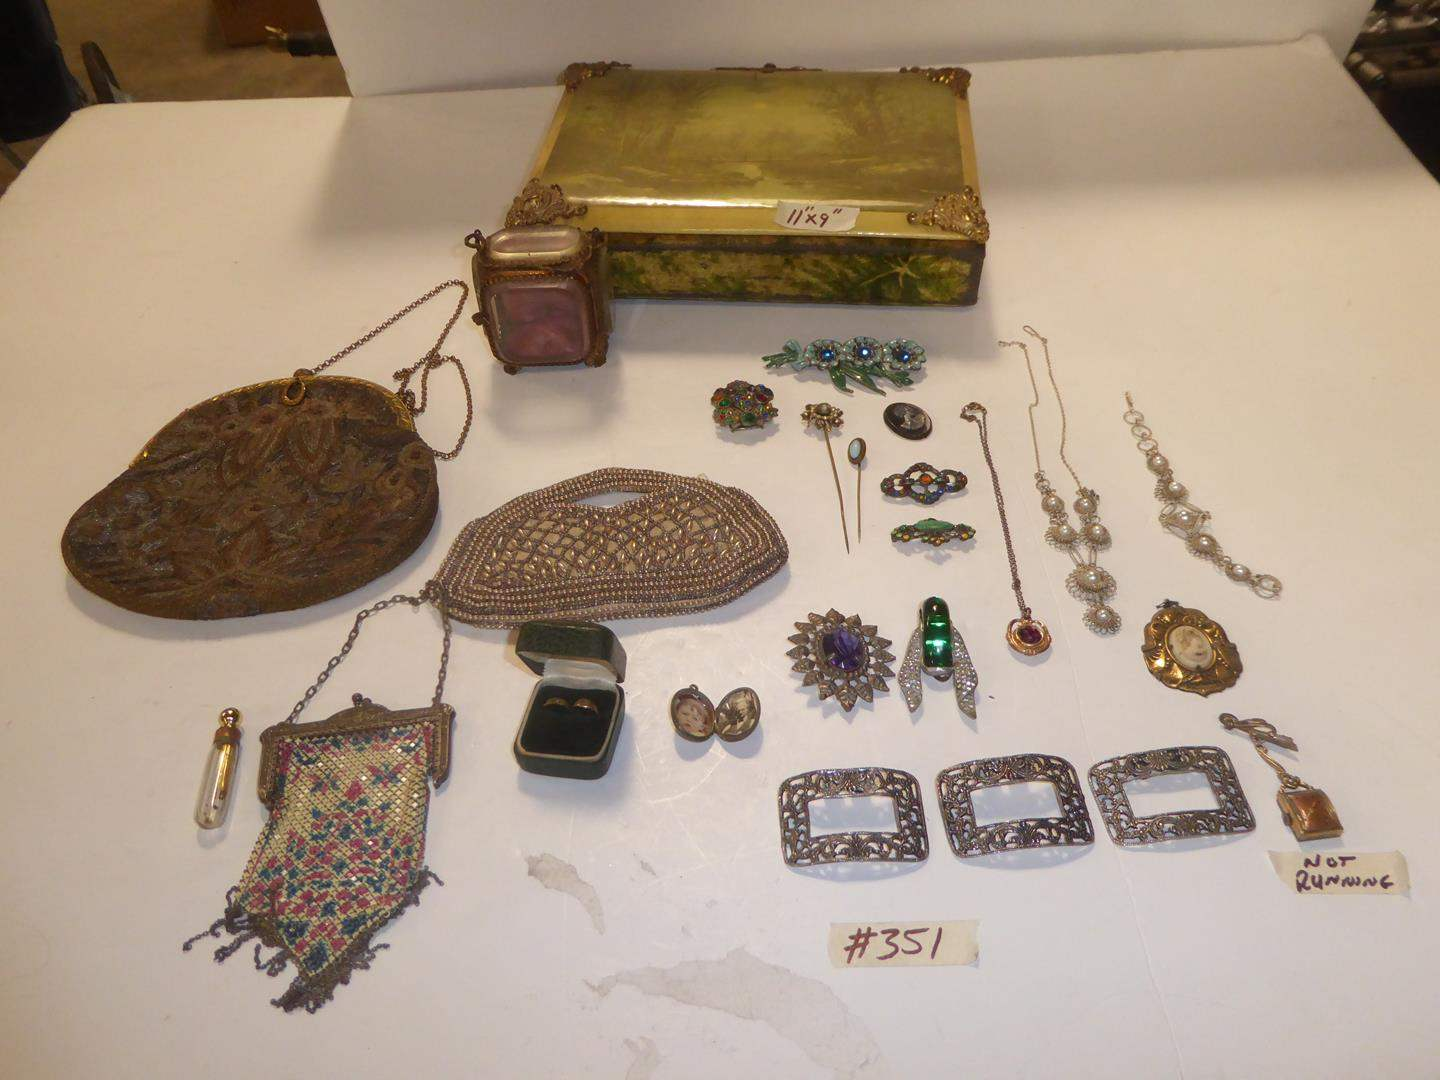 Lot # 351 - Vintage Victorian Purses, Baby Rings, Lockets, Hat Pins, Brooches, Shoe Clips & Victorian Photo Album (main image)